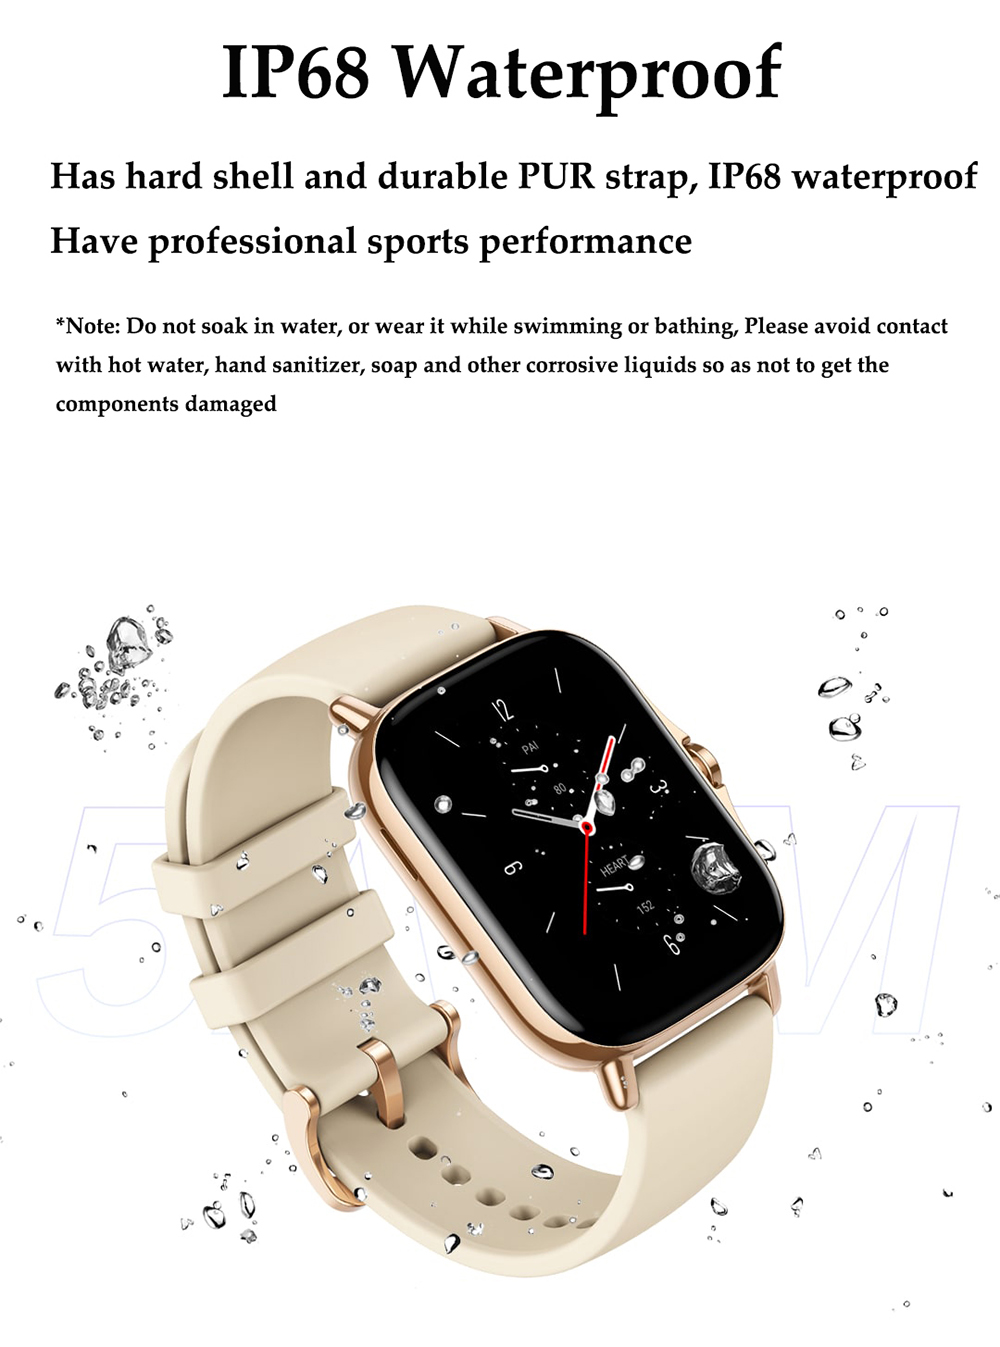 H890b9db6ba4e47789576512232e13f758 For Xiaomi IOS Apple Phone 1.78inch Smart Watch Android Men IP68 Waterproof Full Touch Woman Smartwatch Women 2021 Answer Call